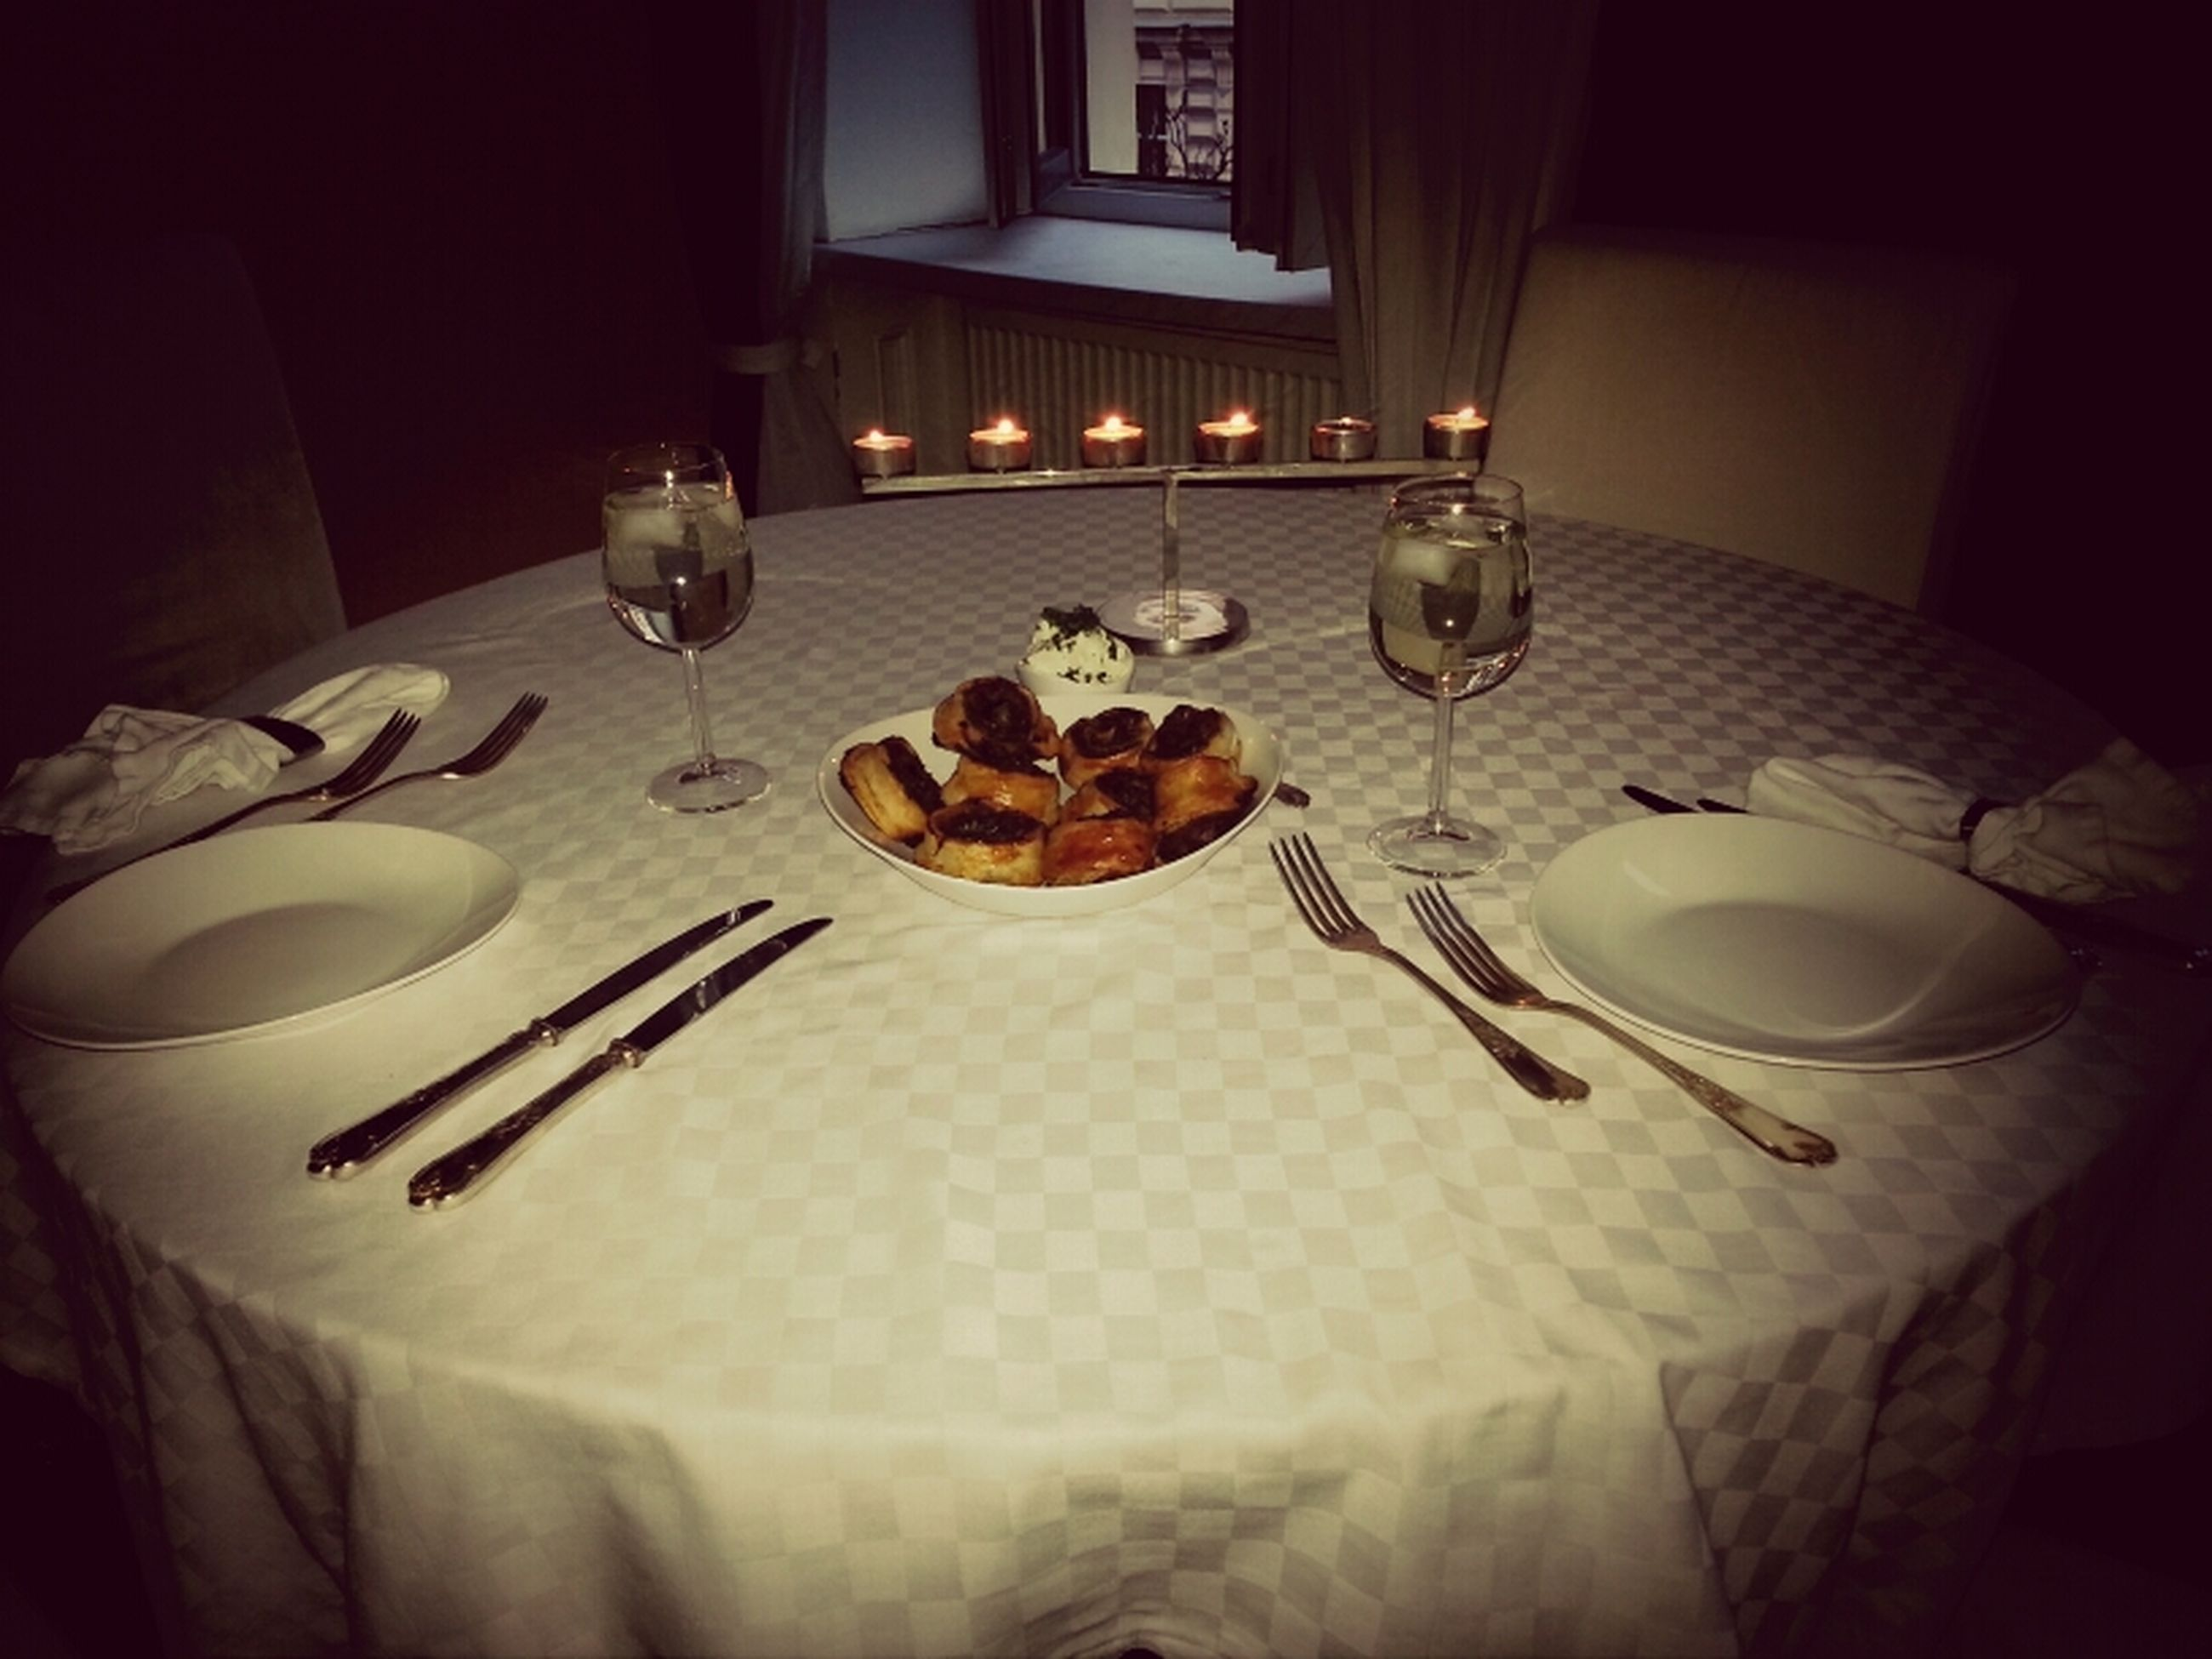 indoors, table, home interior, food and drink, plate, still life, high angle view, food, chair, absence, no people, tablecloth, bed, freshness, ready-to-eat, domestic room, unhealthy eating, sweet food, dining table, home